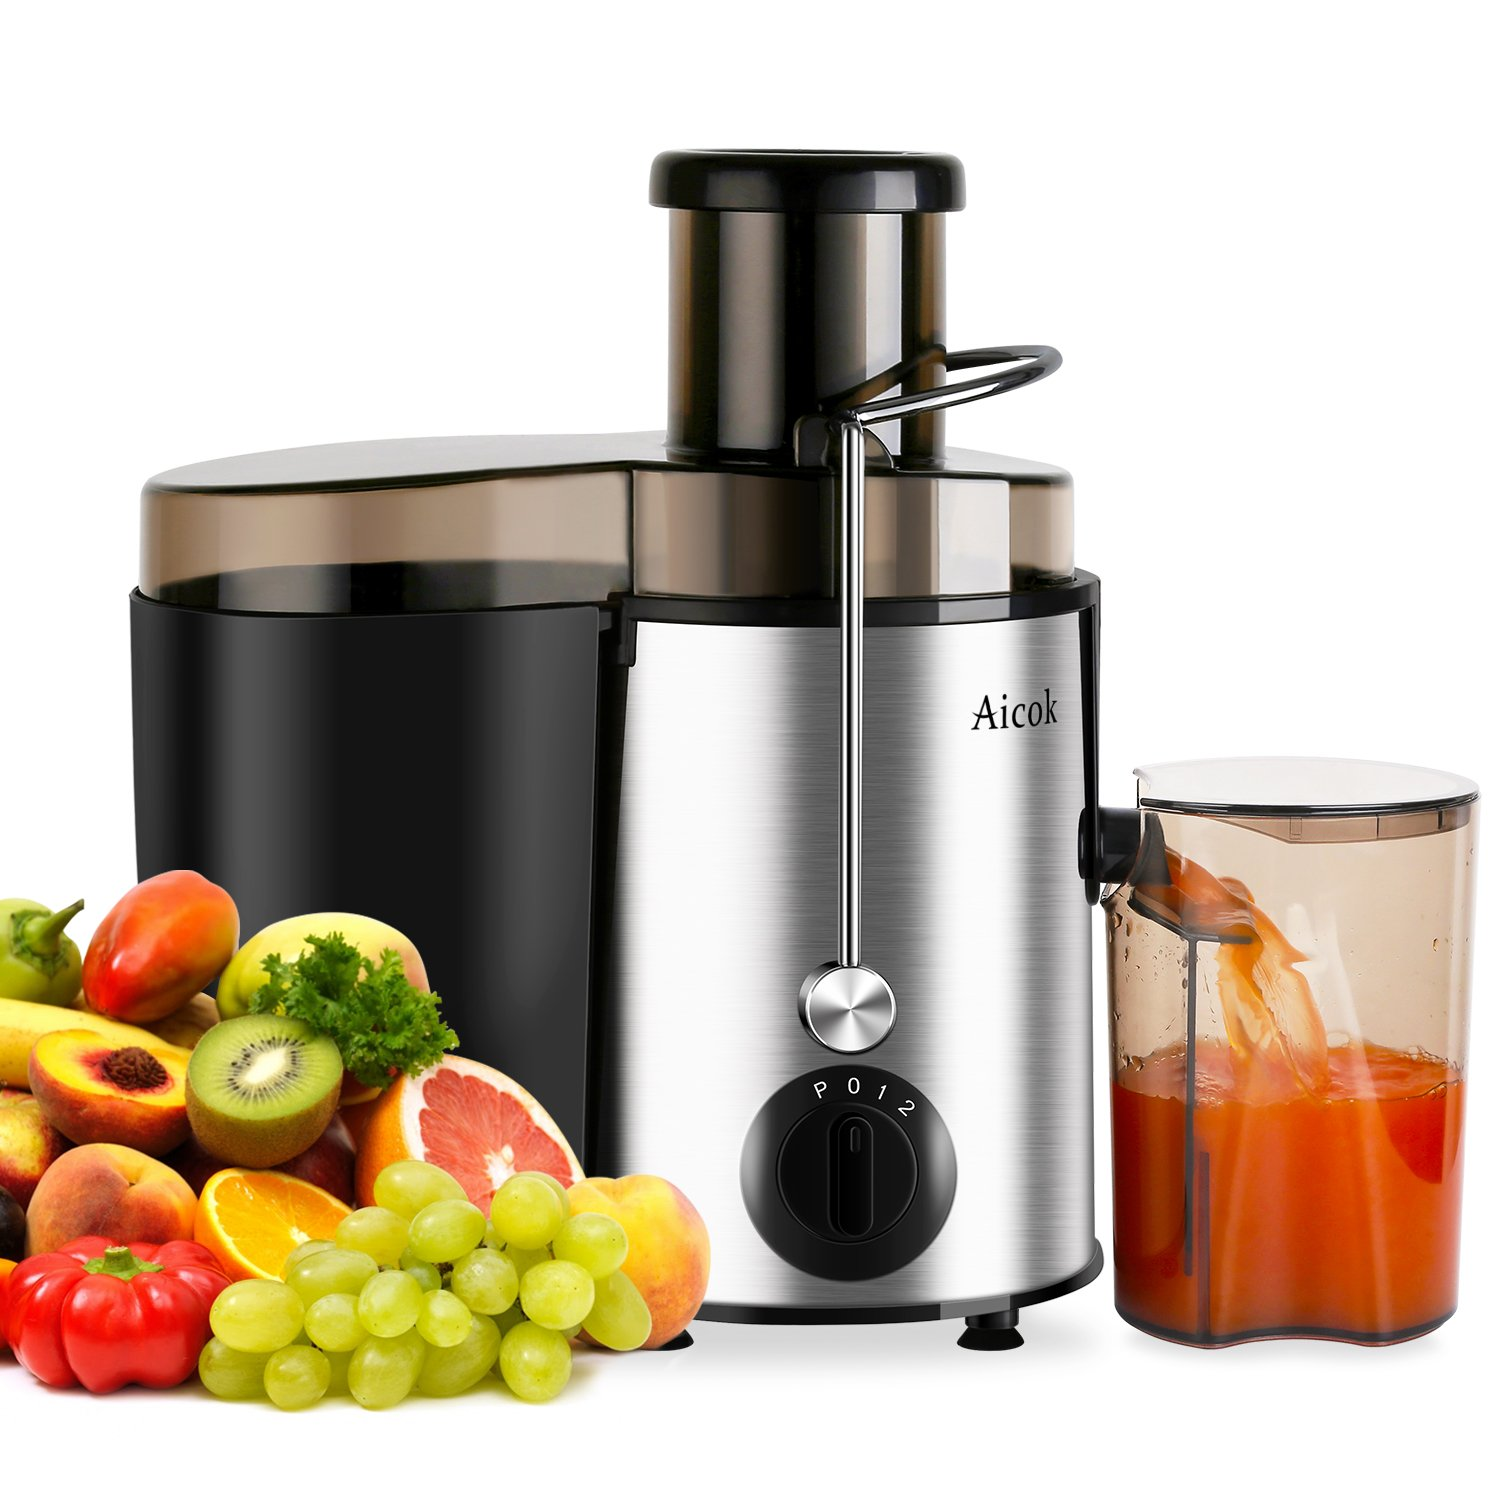 Slow Juicer Reviews 2018 : Best Masticating Juicer 2018, Reviews and Buying Guide